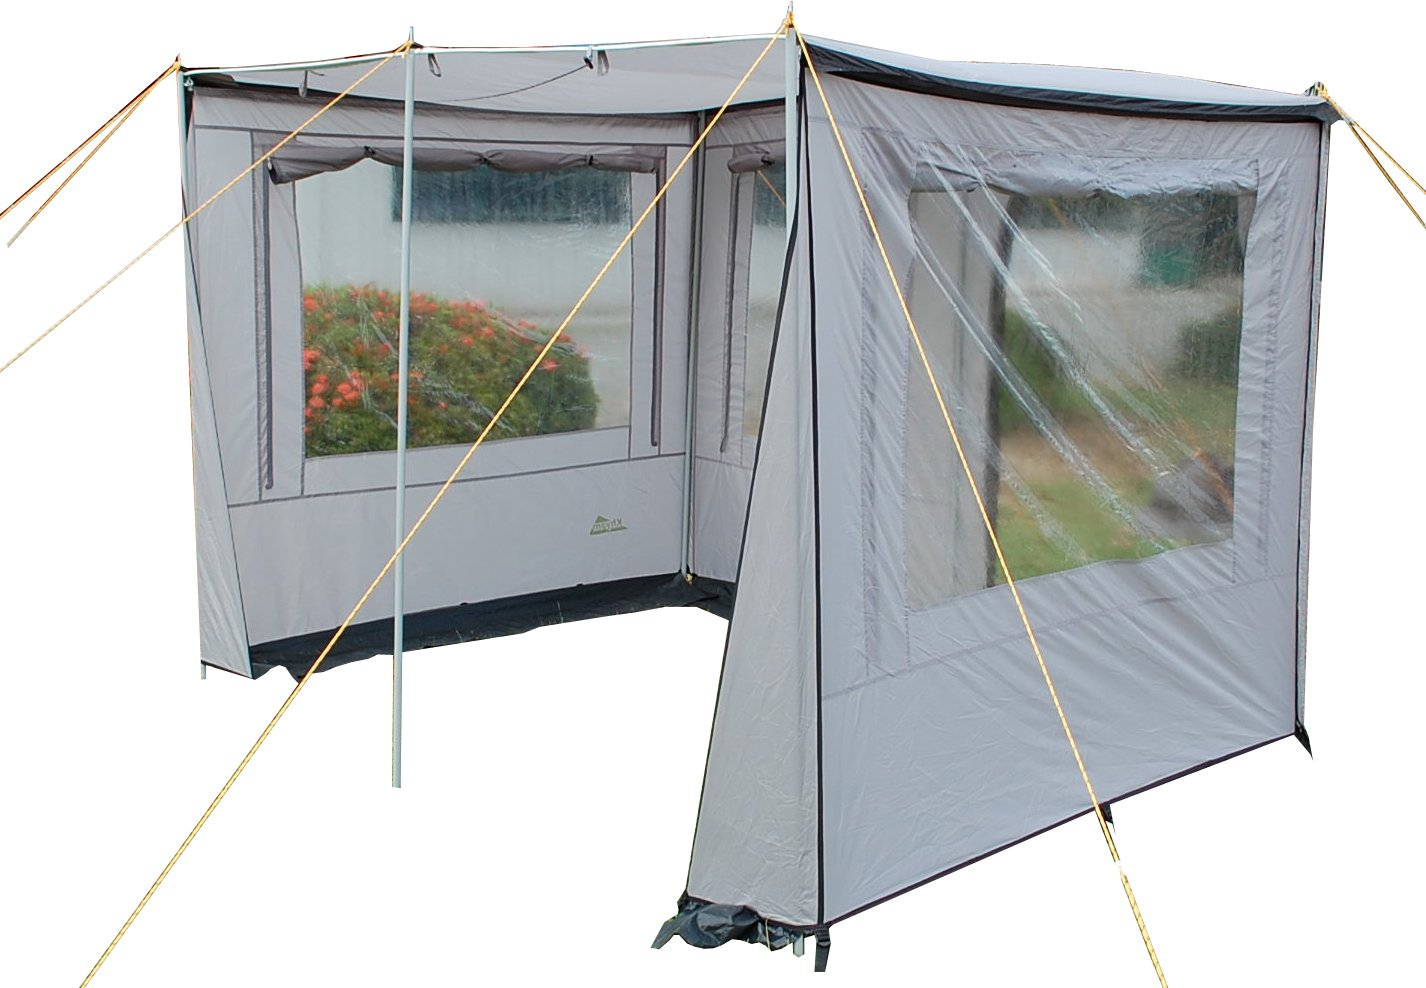 Khyam Sun Canopy Side Panels Camper Essentials